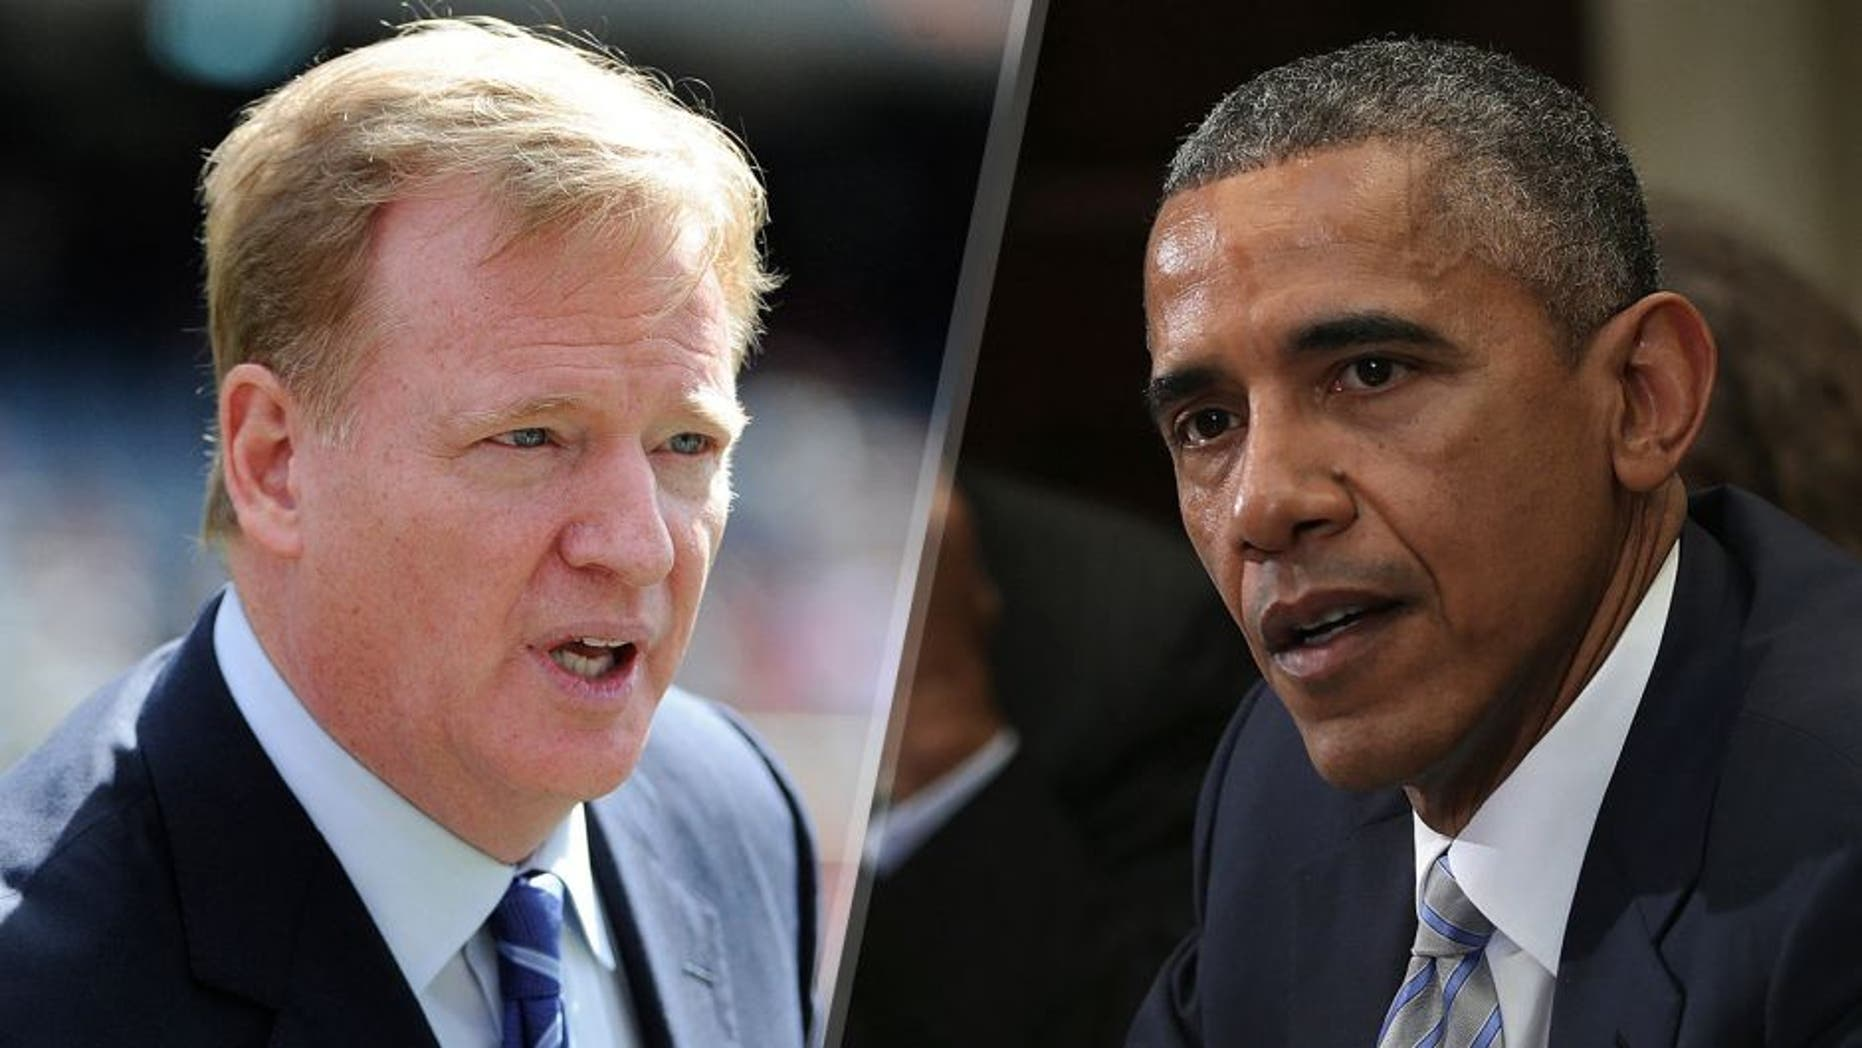 NFL Commissioner Roger Goodell on the field before the game between the Chicago Bears and the Green Bay Packers on September 13, 2015 at Soldier Field in Chicago, Illinois. (Photo by David Banks/Getty Images) U.S. President Barack Obama speaks as White House senior adviser Valerie Jarrett (L) and Philadelphia Mayor Michael Nutter (2nd L) listen during a Roosevelt Room event at the White House March 25, 2015 in Washington, DC. President Obama met with local elected officials and small business exporters on trade.. (Photo by Alex Wong/Getty Images)